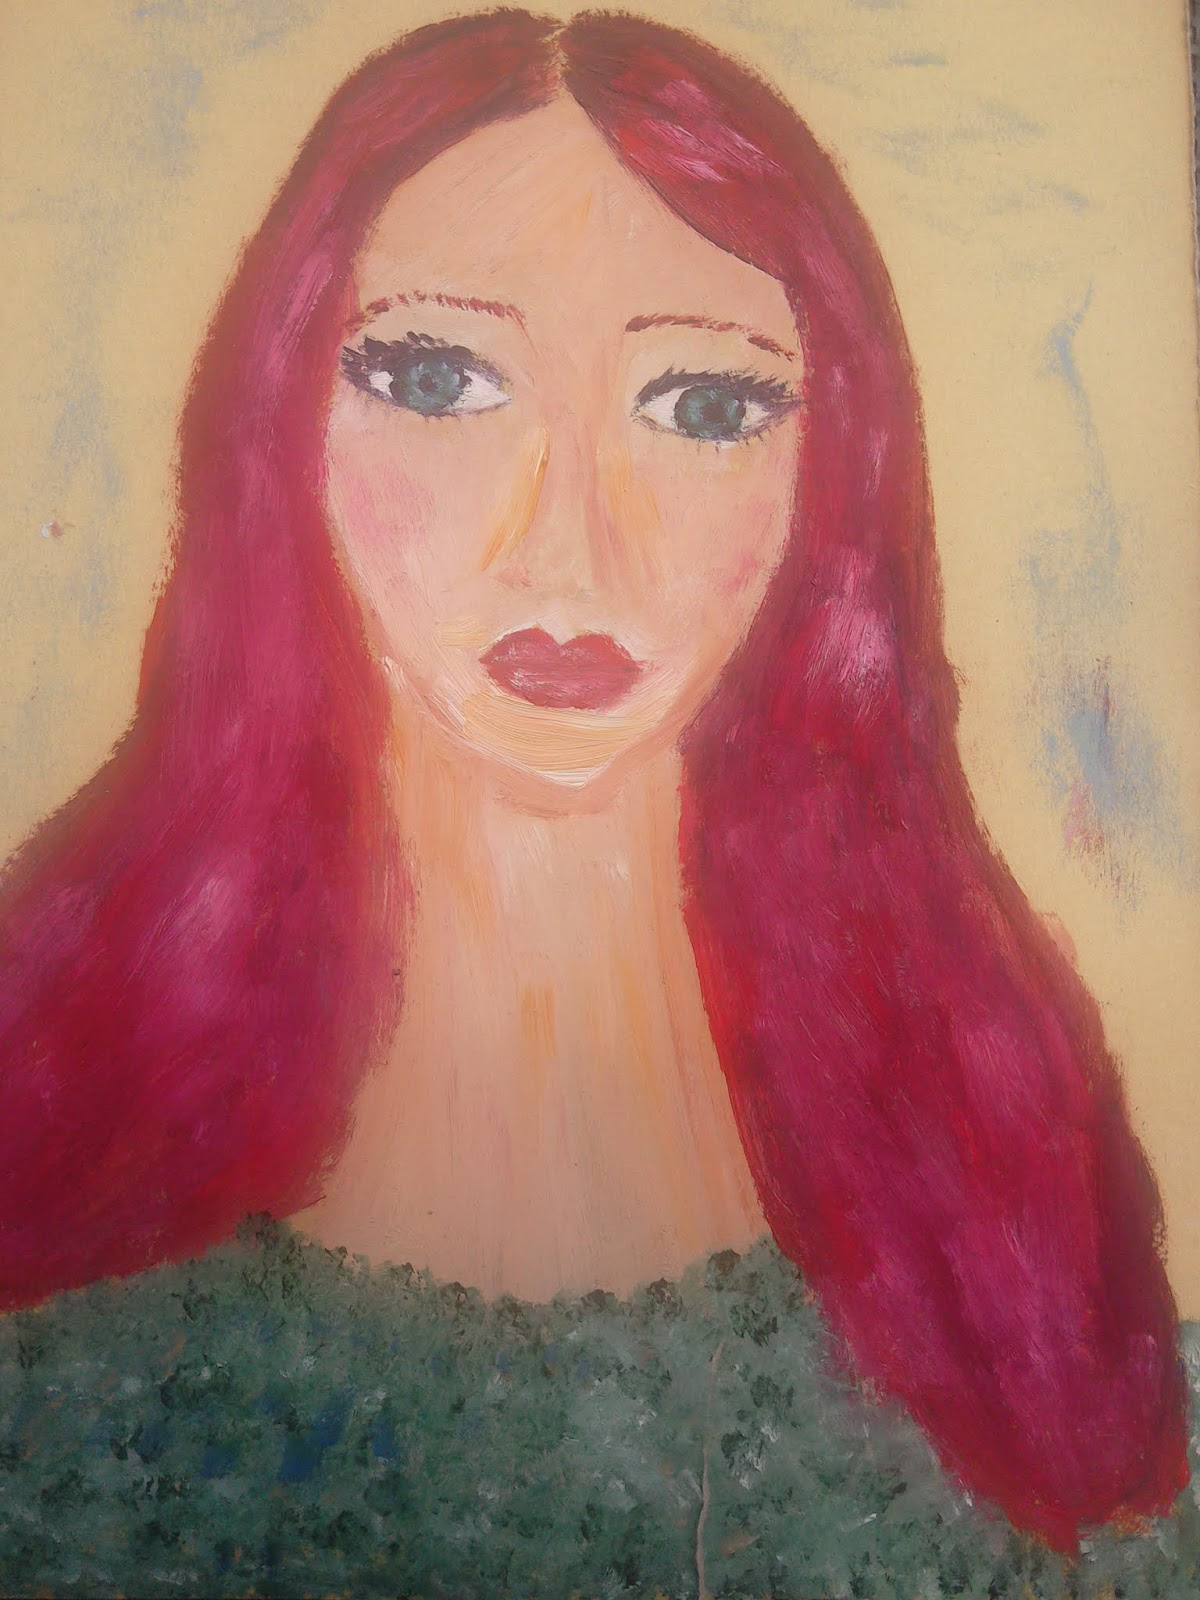 Oil Painting: My Art Lately #redhead